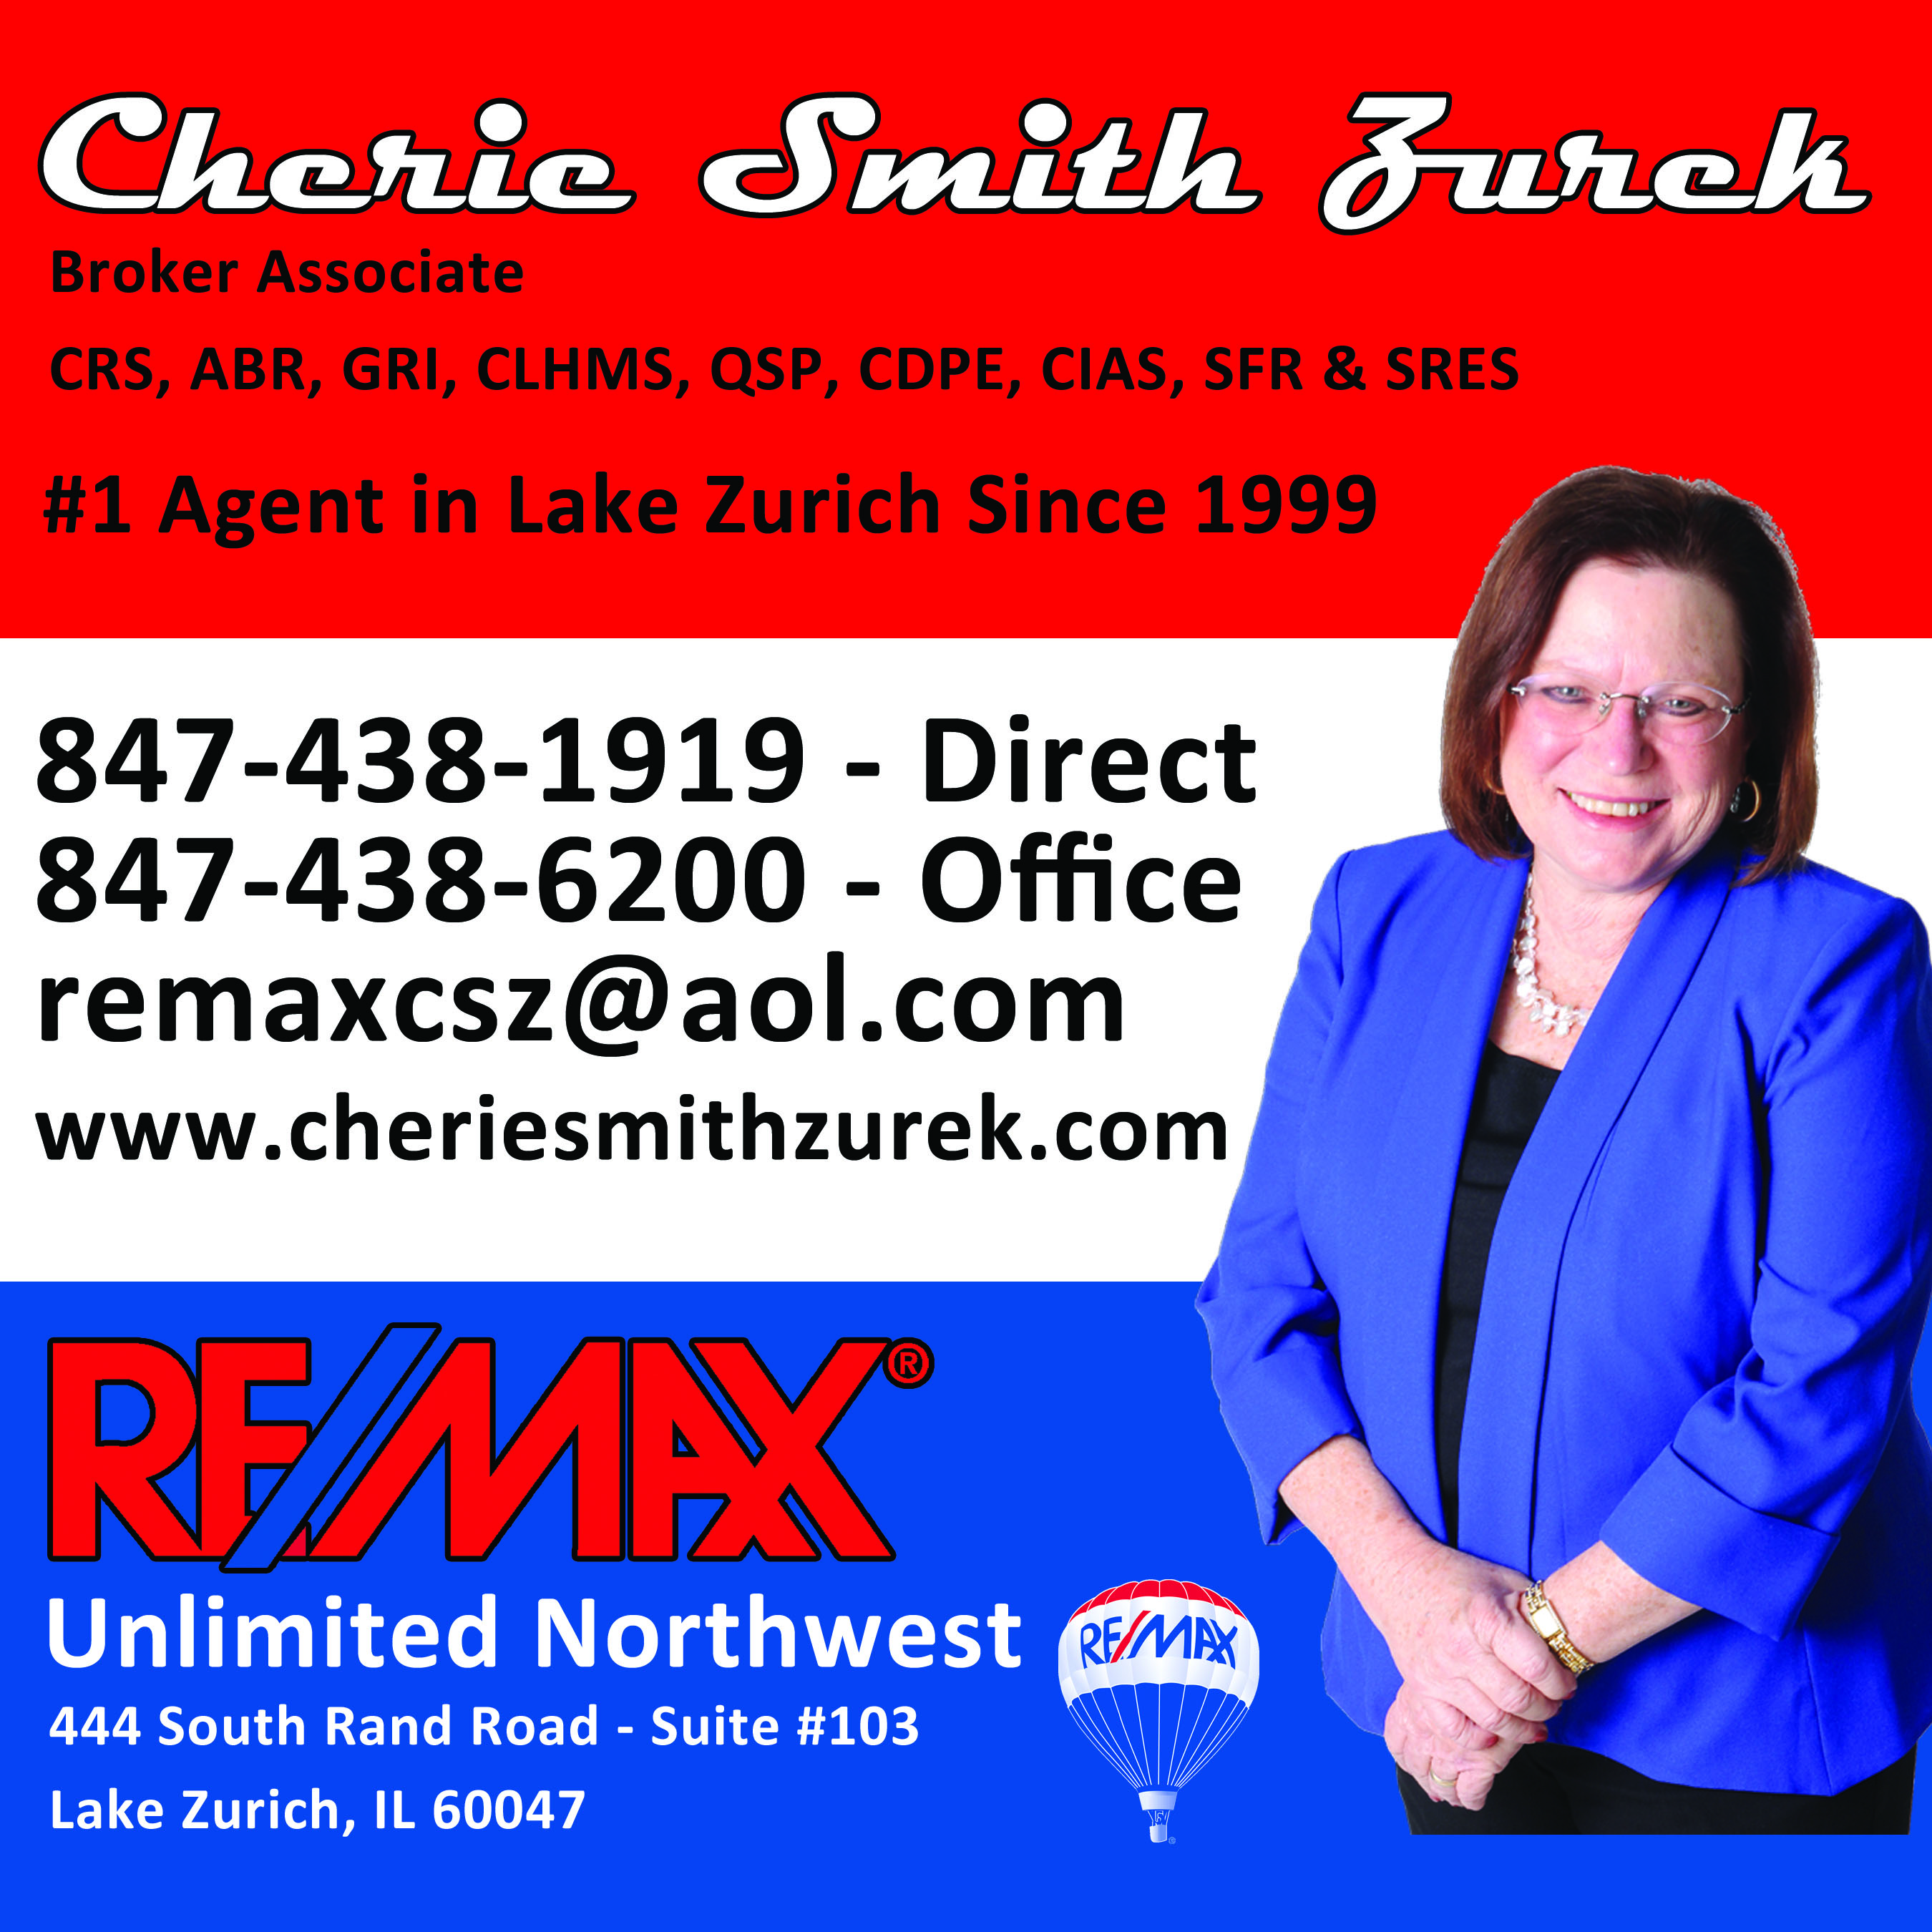 Cherie Smith Zurek